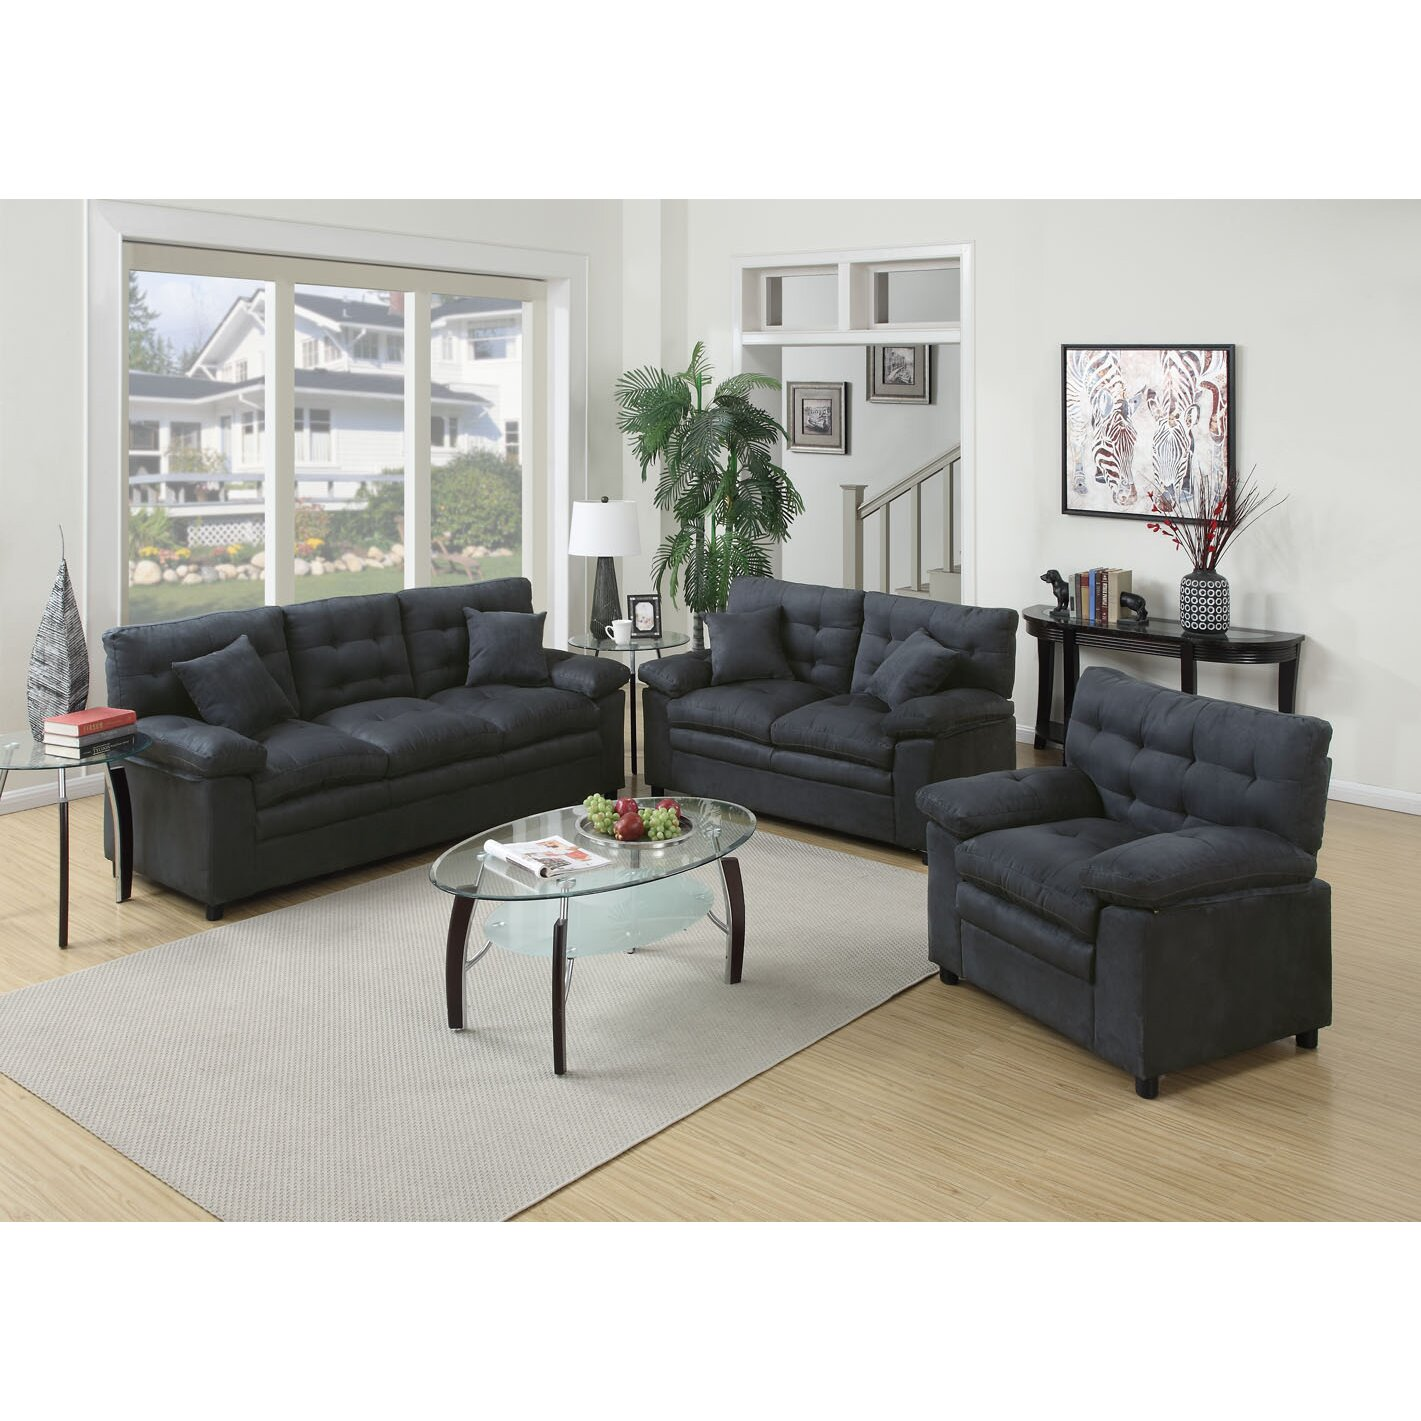 Poundex bobkona colona 3 piece living room set reviews for 3 piece living room set